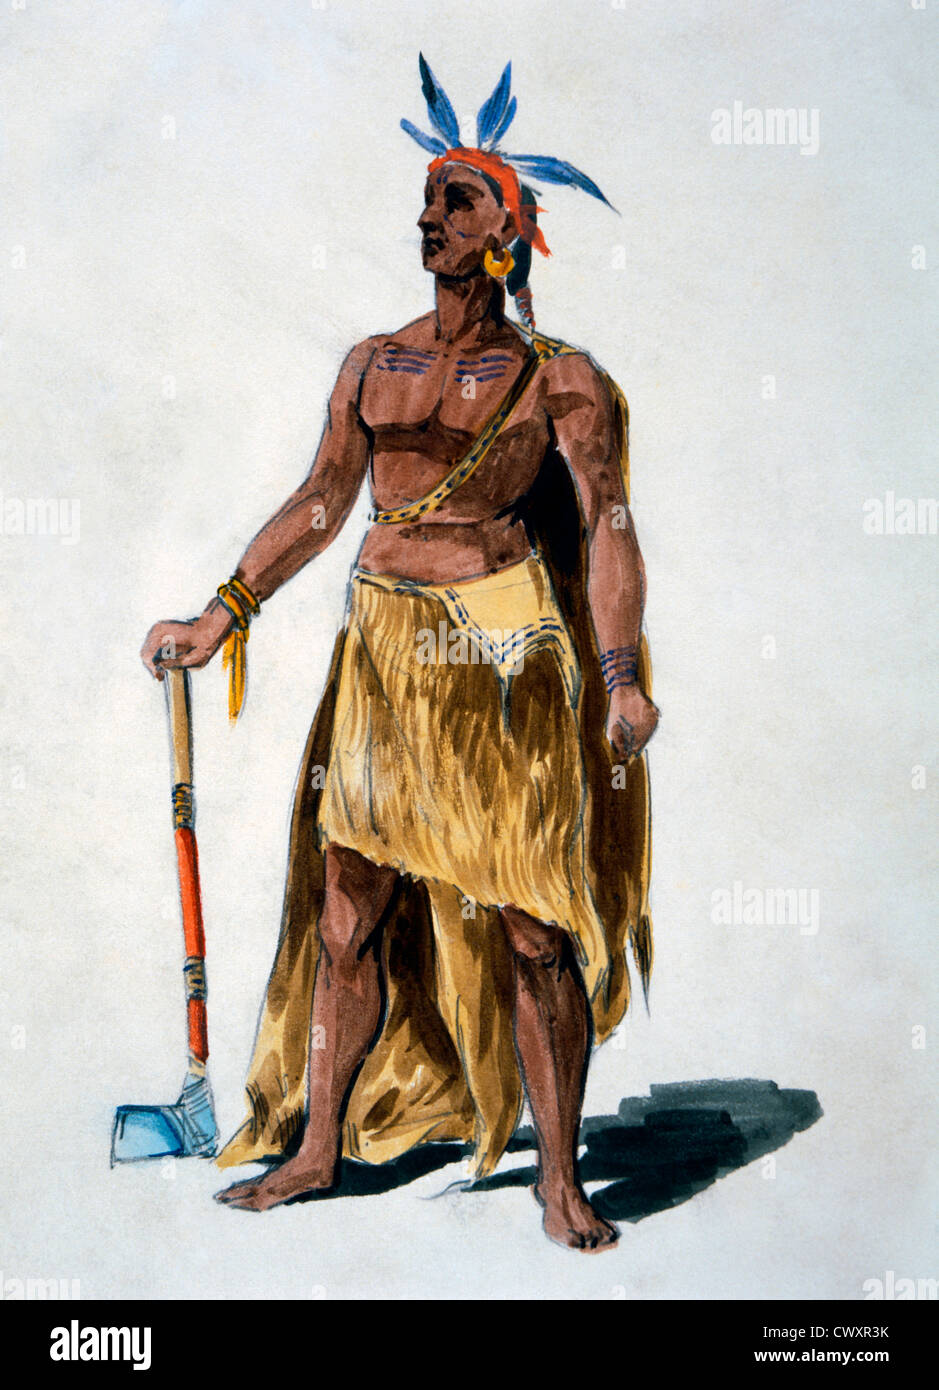 Native American, Watercolor Painting William L. Wells for the Columbian Exposition Pageant, Circa 1892 - Stock Image